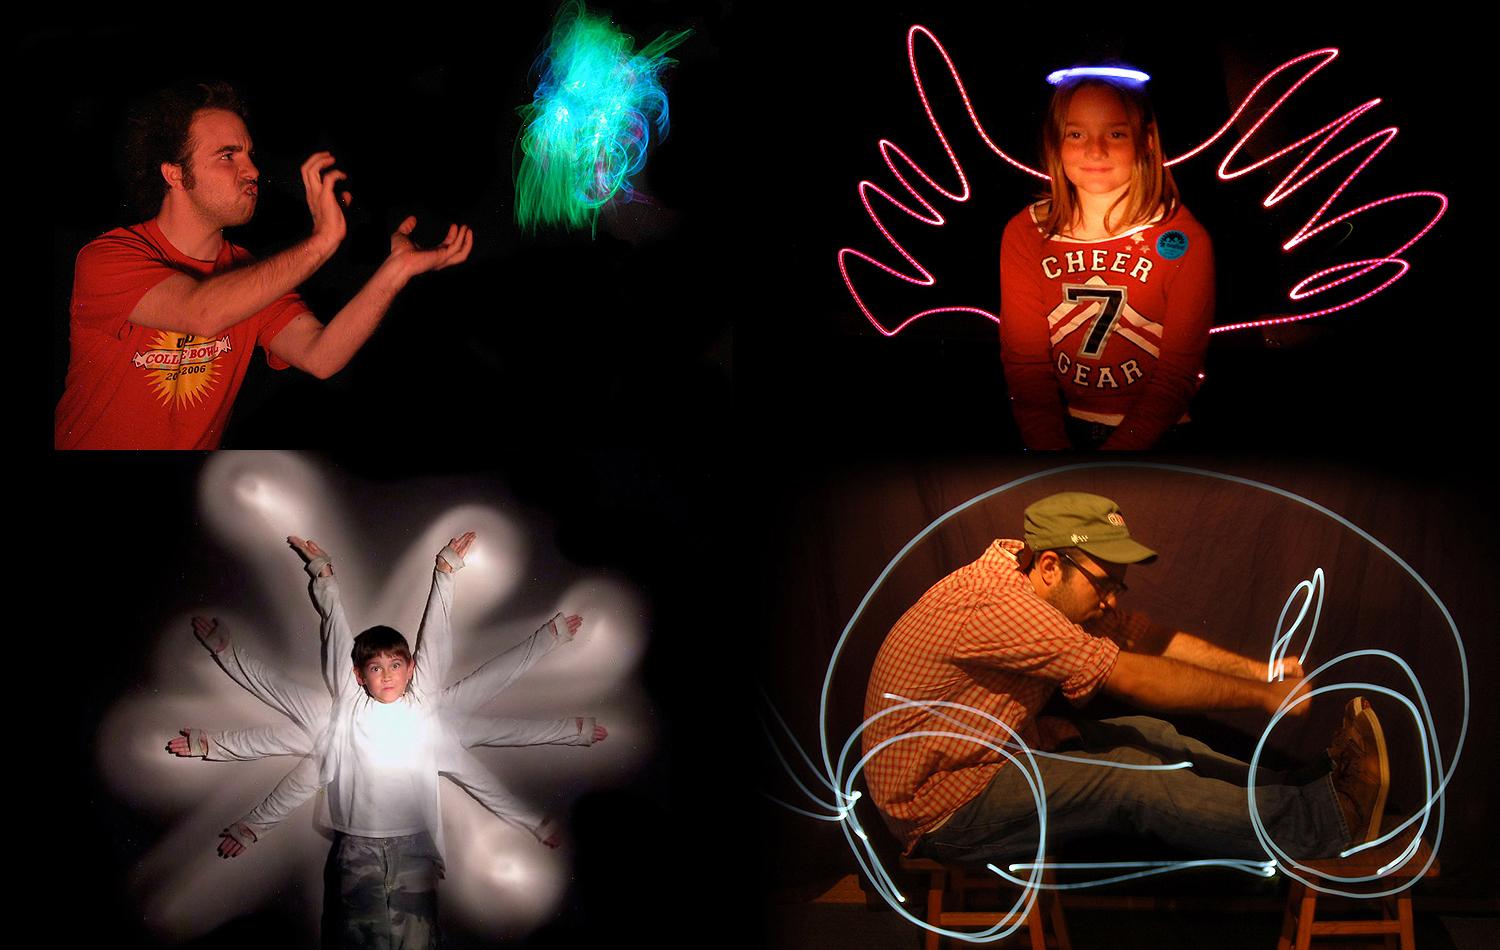 Tinkering projects – Light Painting